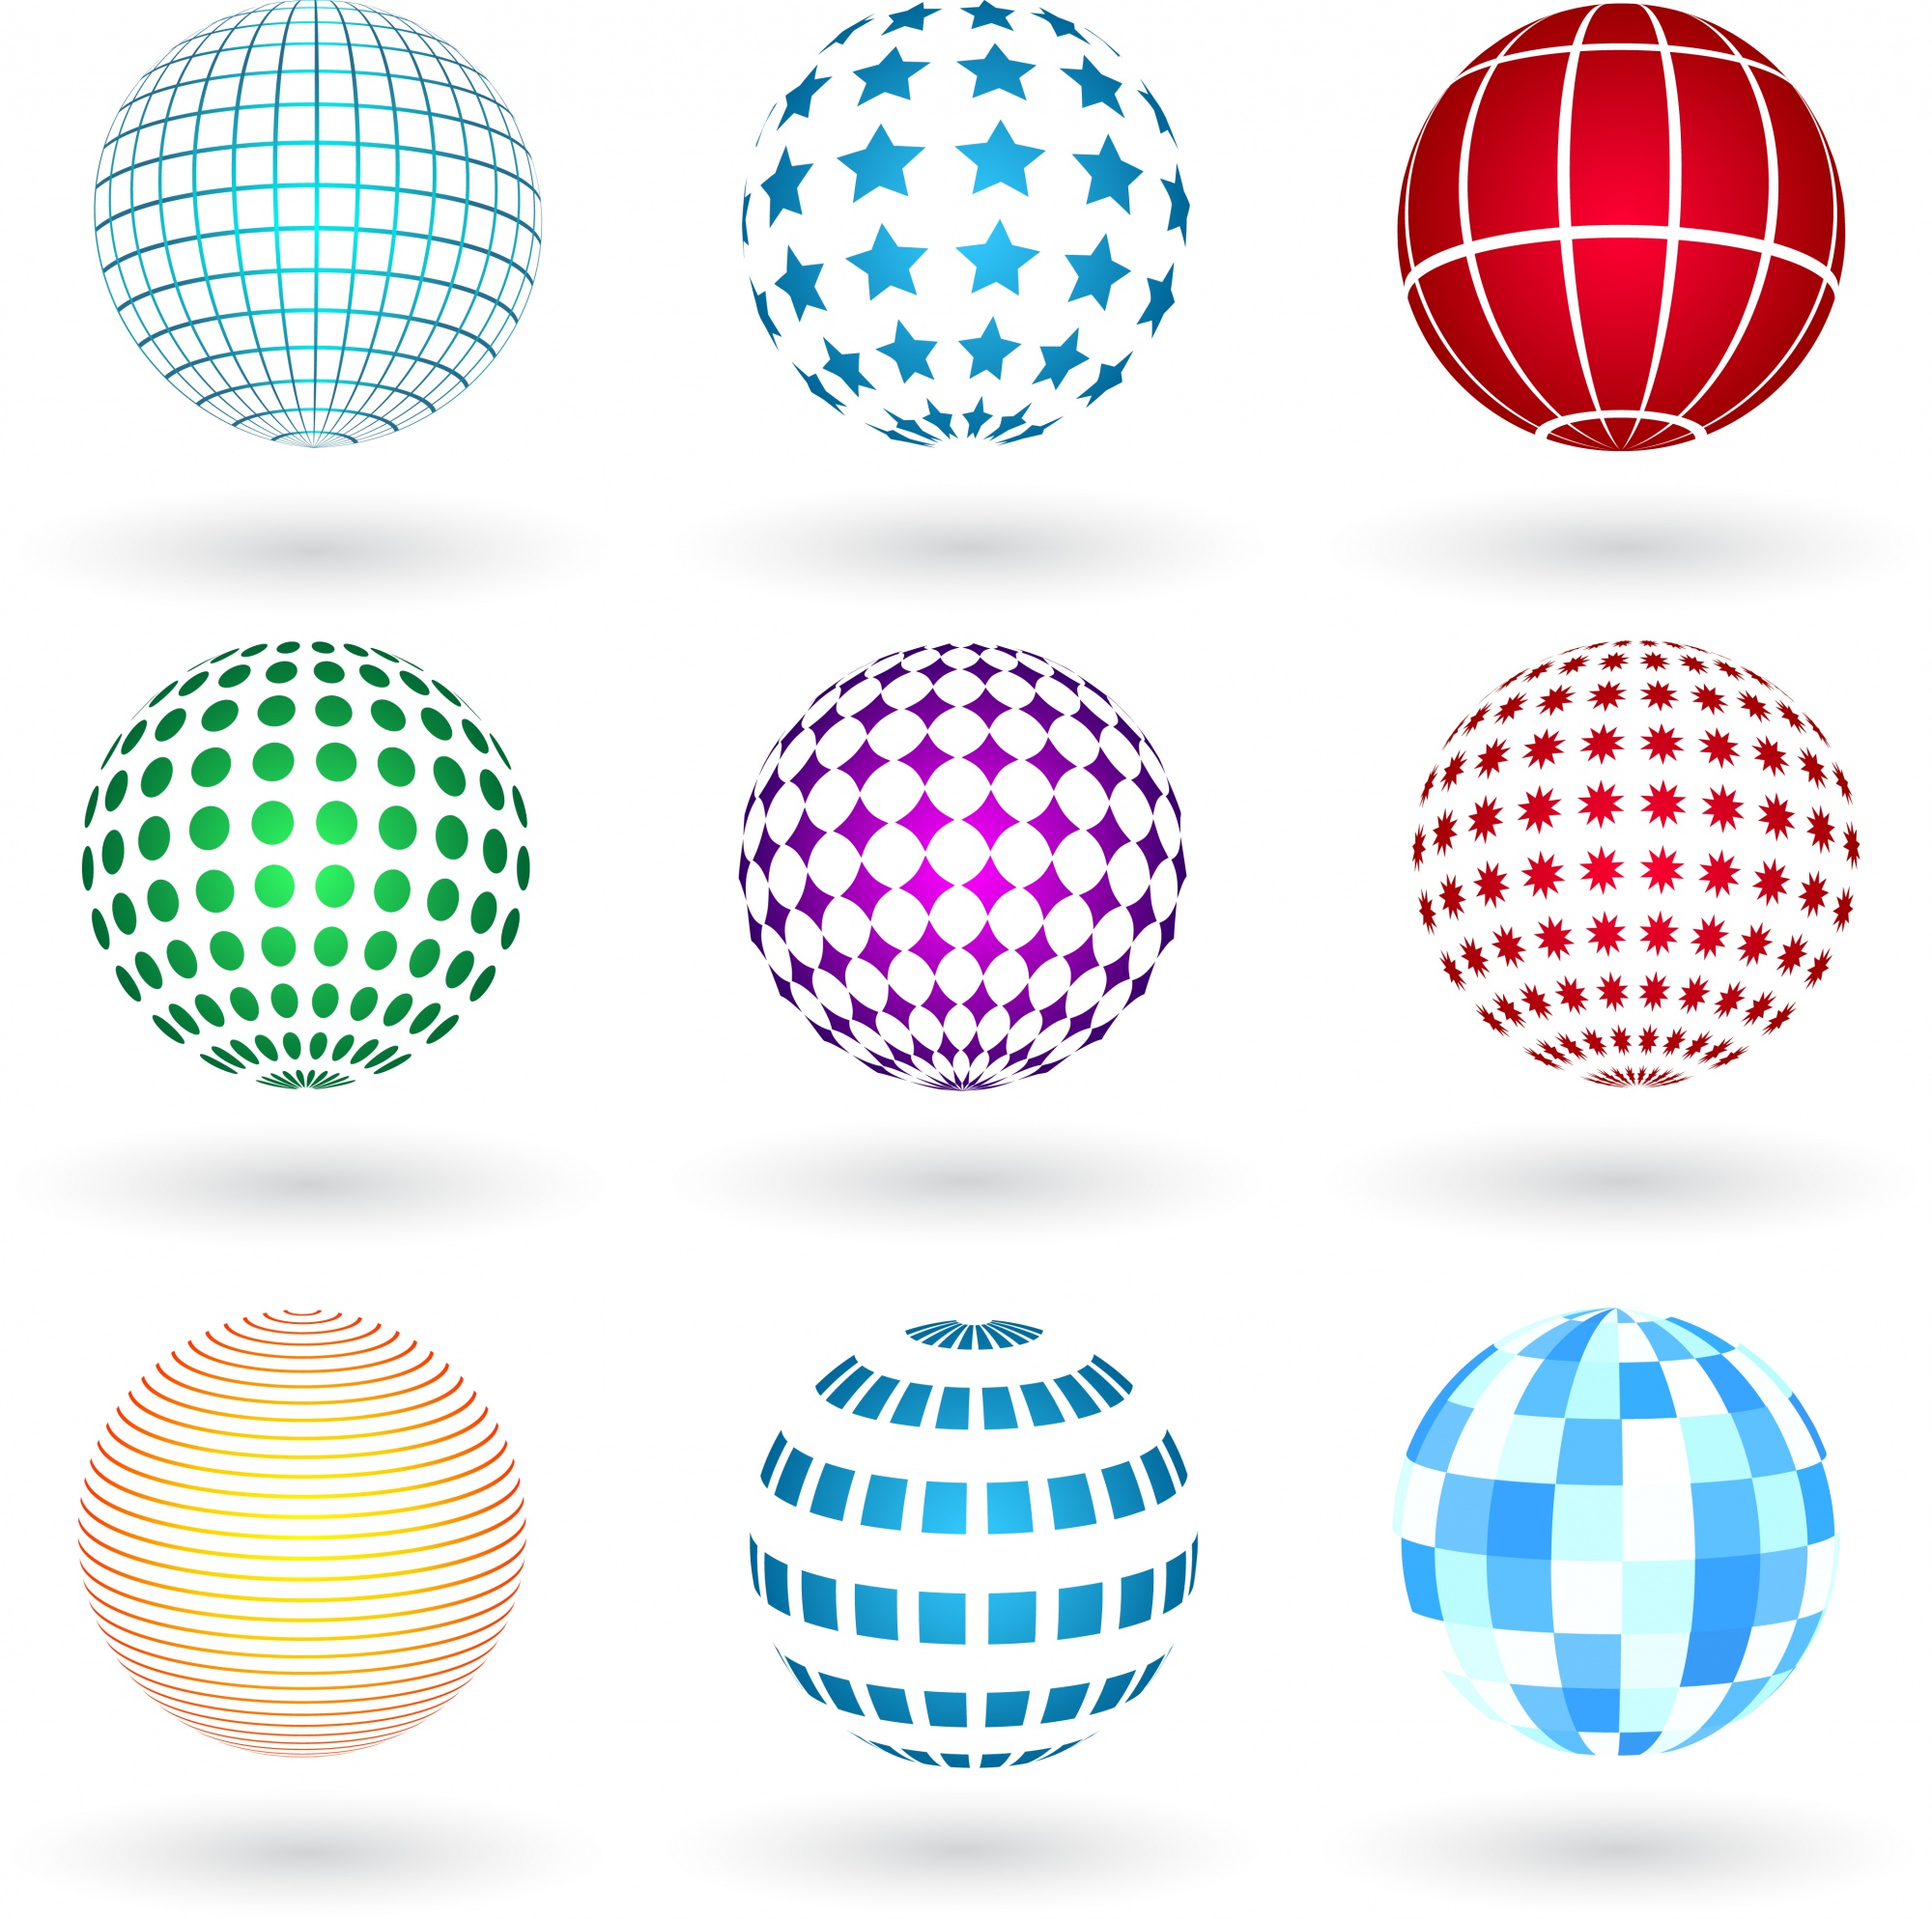 Spheres with various designs